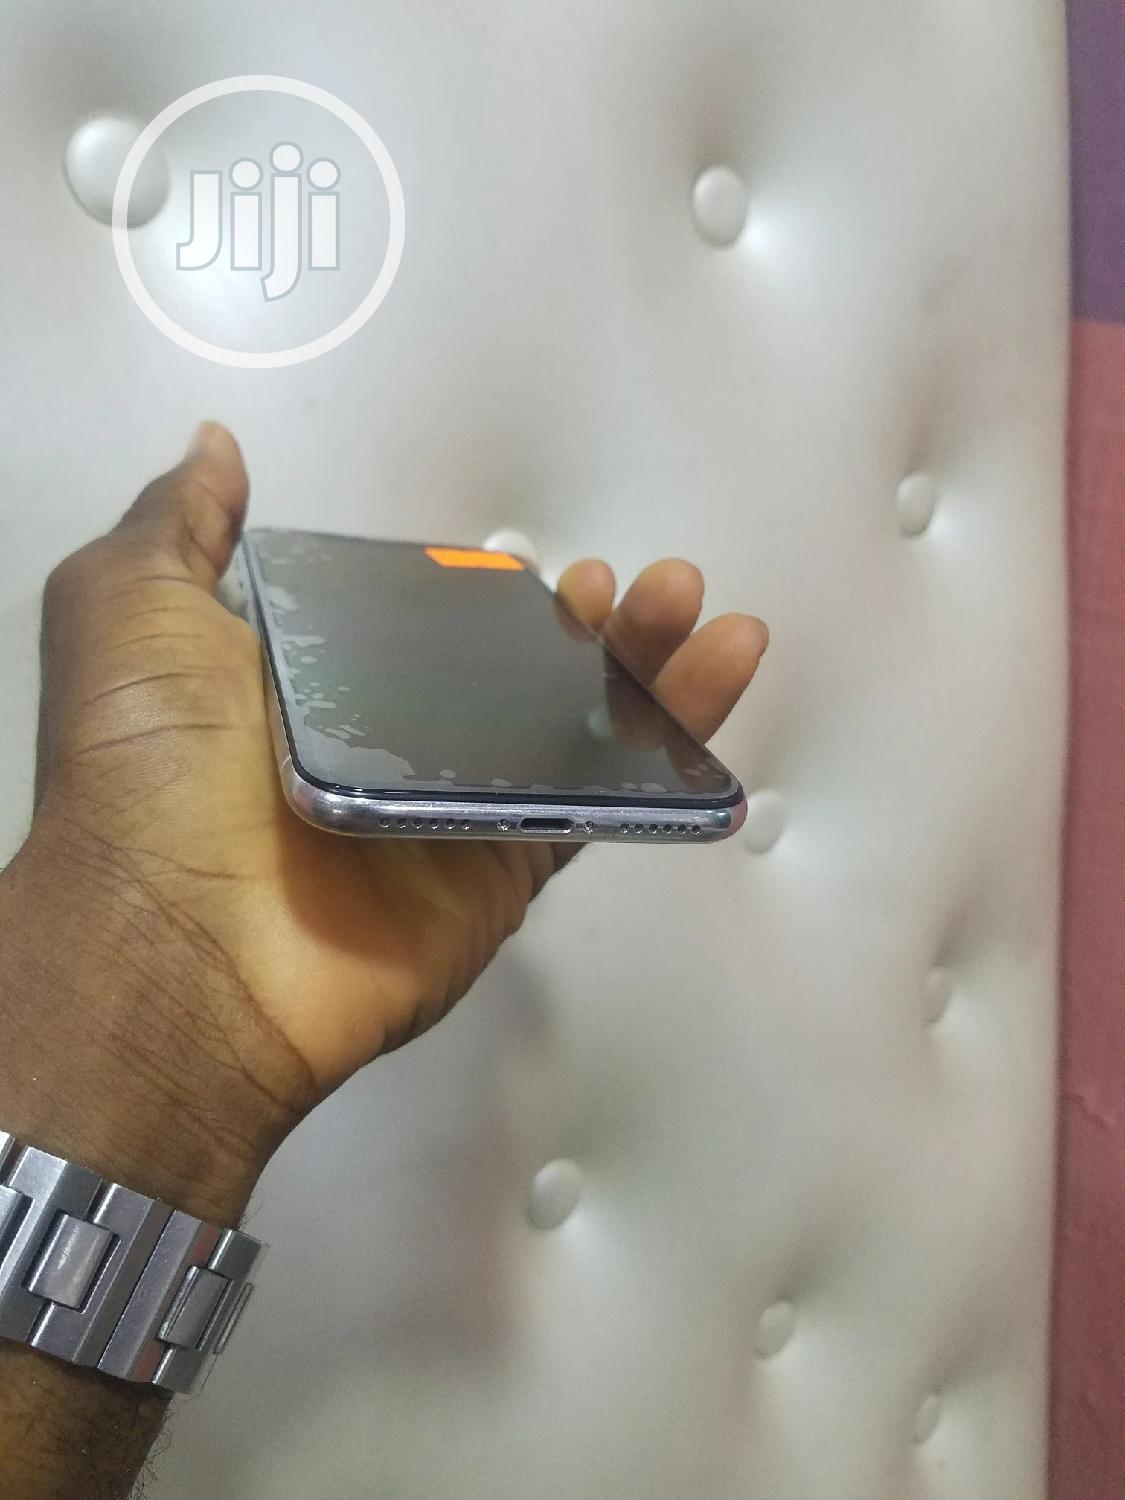 Apple iPhone X 256 GB White | Mobile Phones for sale in Ikeja, Lagos State, Nigeria